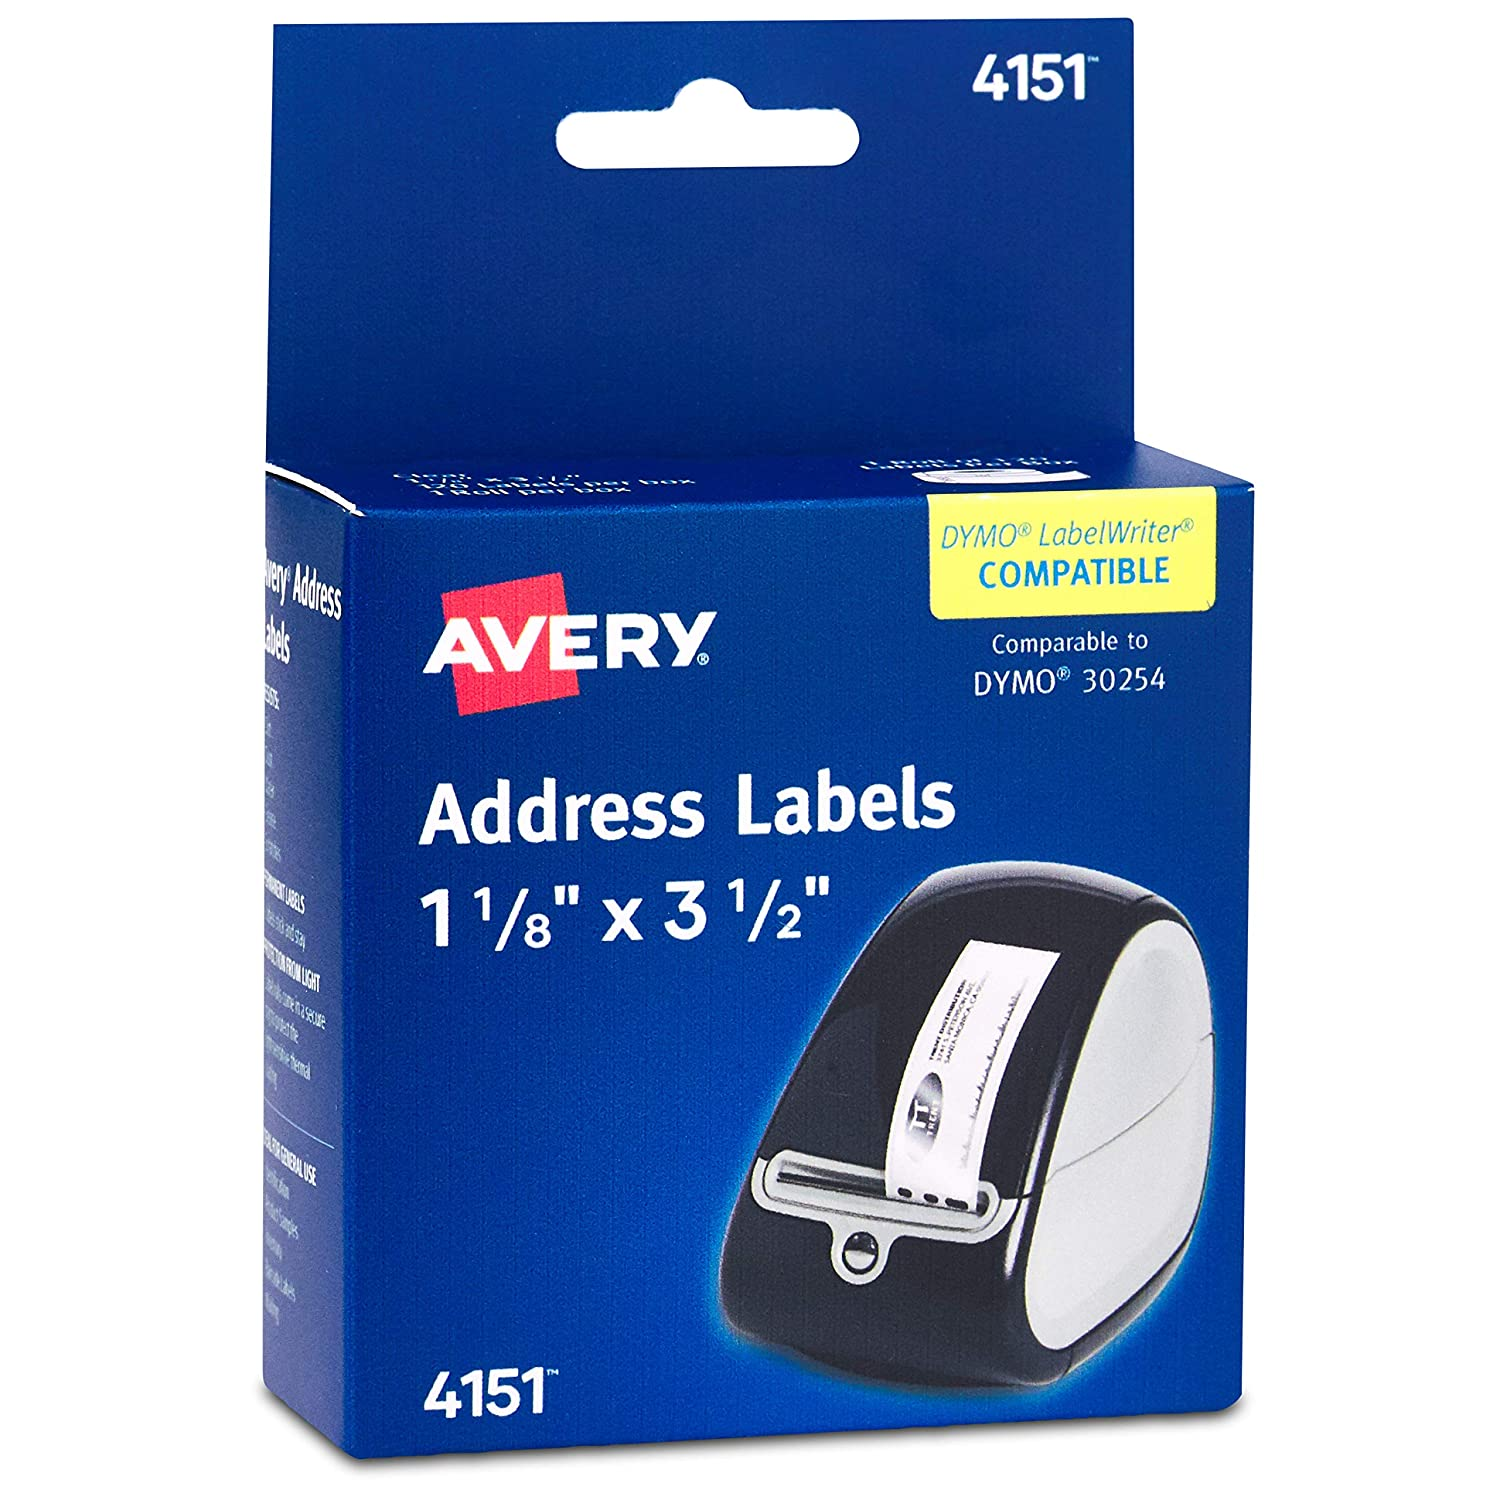 B00004Z5RT Avery Labels for Dymo Label Printers, Same Size as Dymo 30252, Glossy Clear, 1-1/8'' x 3-1/2'', Roll of 120 Labels (4151) 81L4m0nqIcL